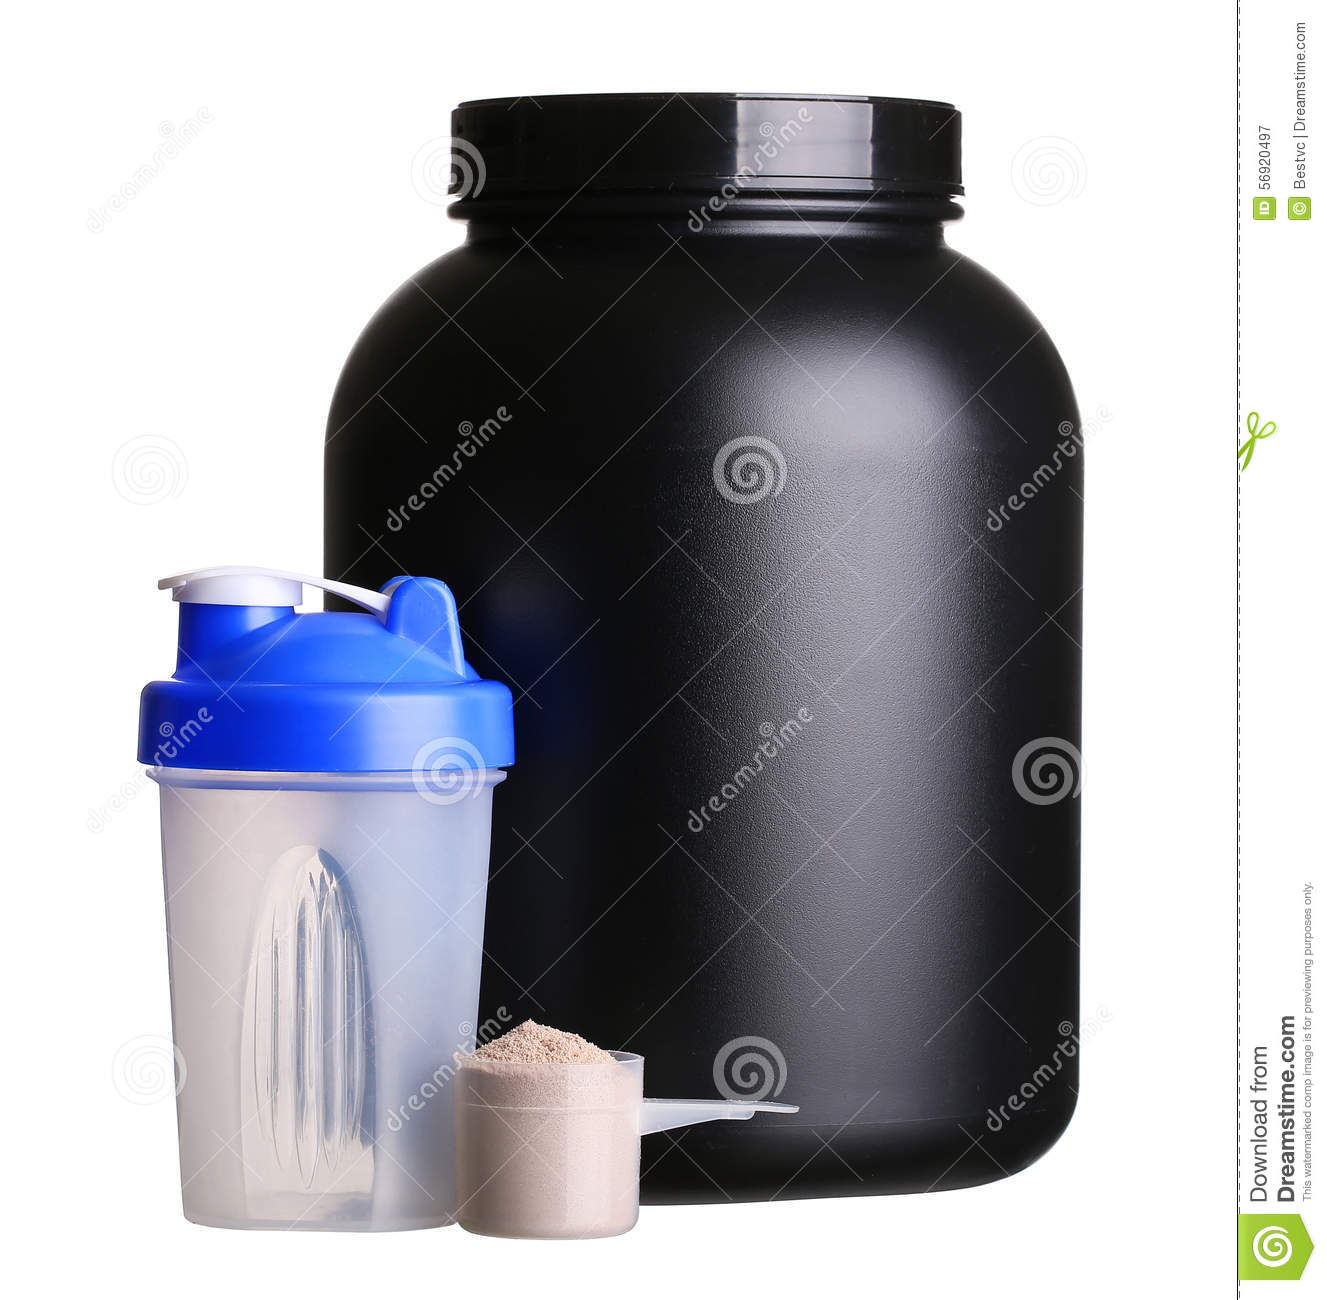 Protein Shaker Net: Big Tub Of Whey Protein With Shaker And Cup Of Protein